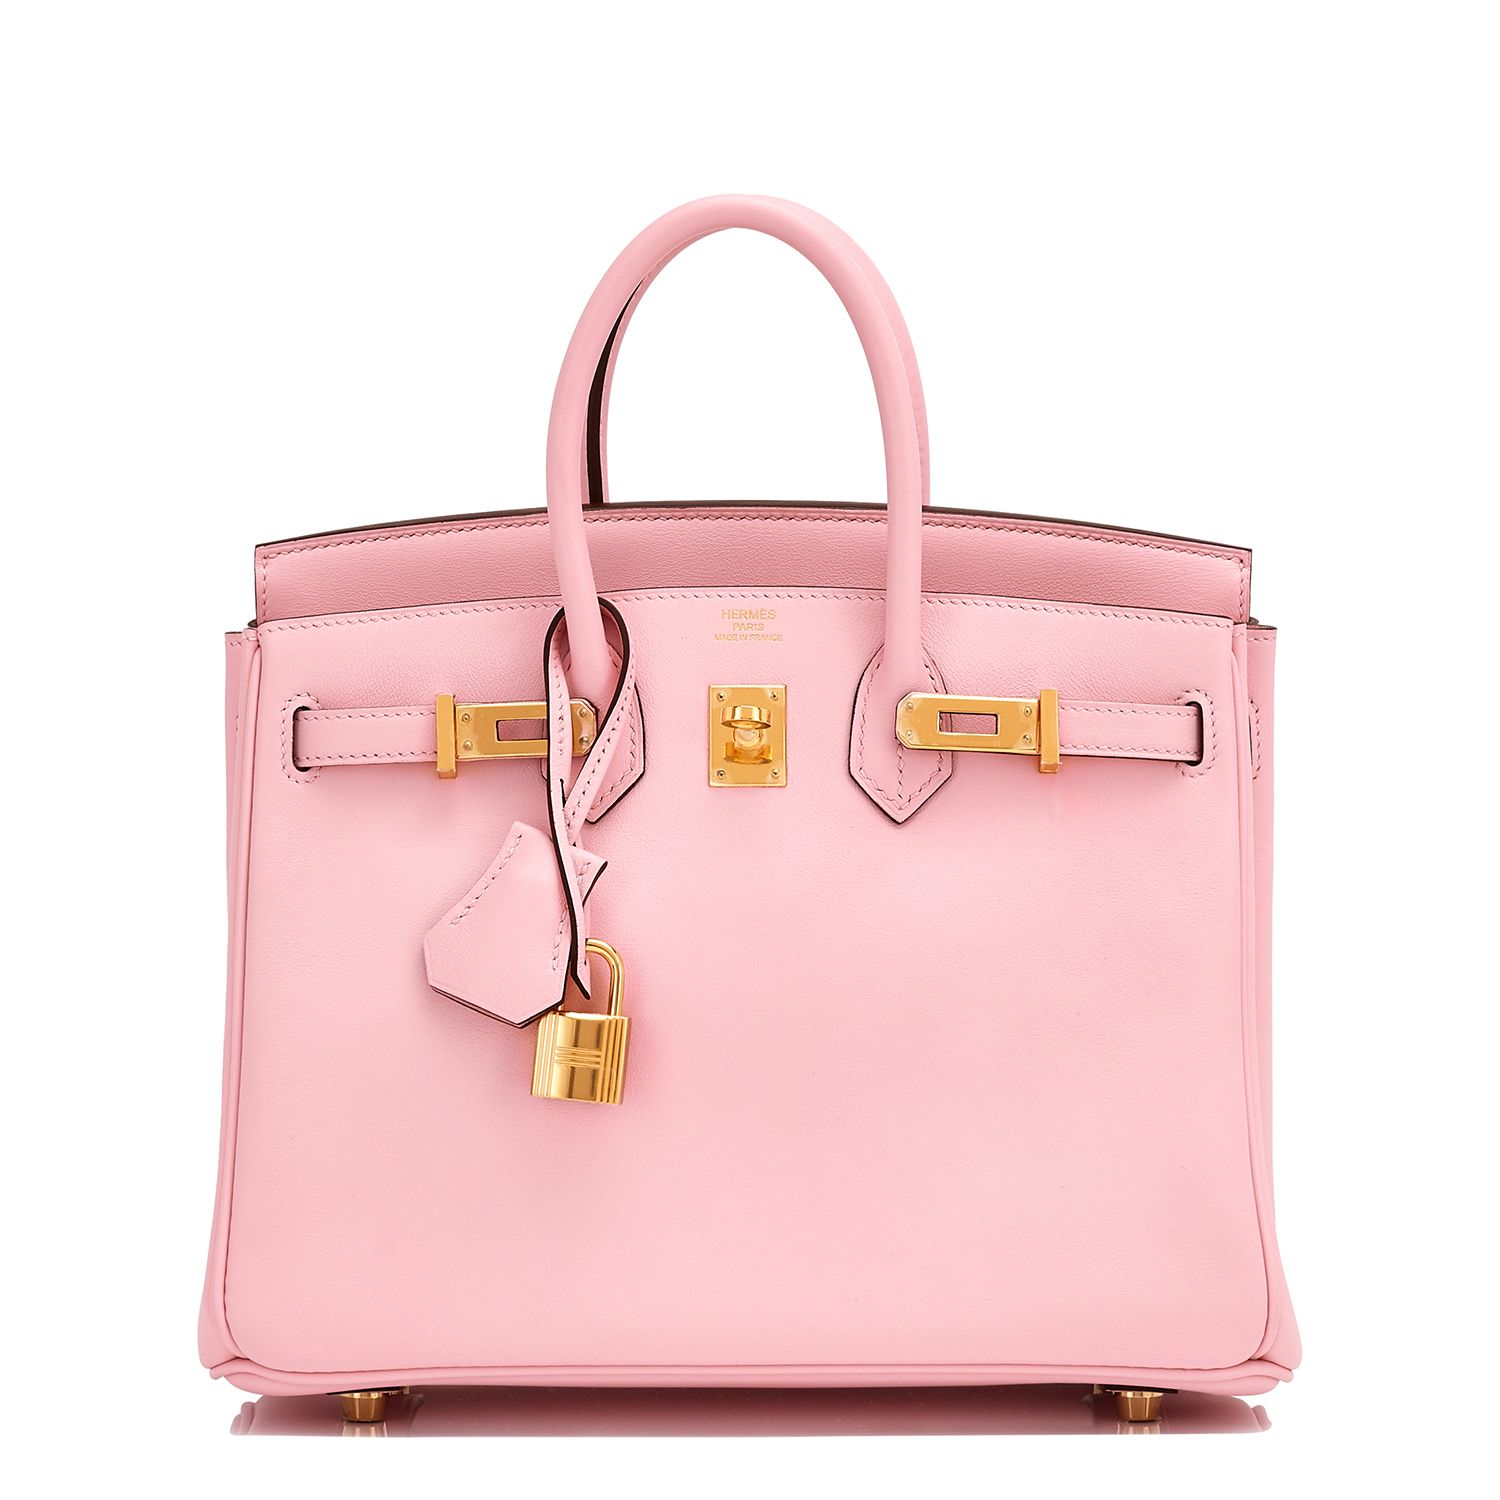 2726f2738e9 Hermes  Birkin  Bag Rose Sakura Swift Gold Hardware